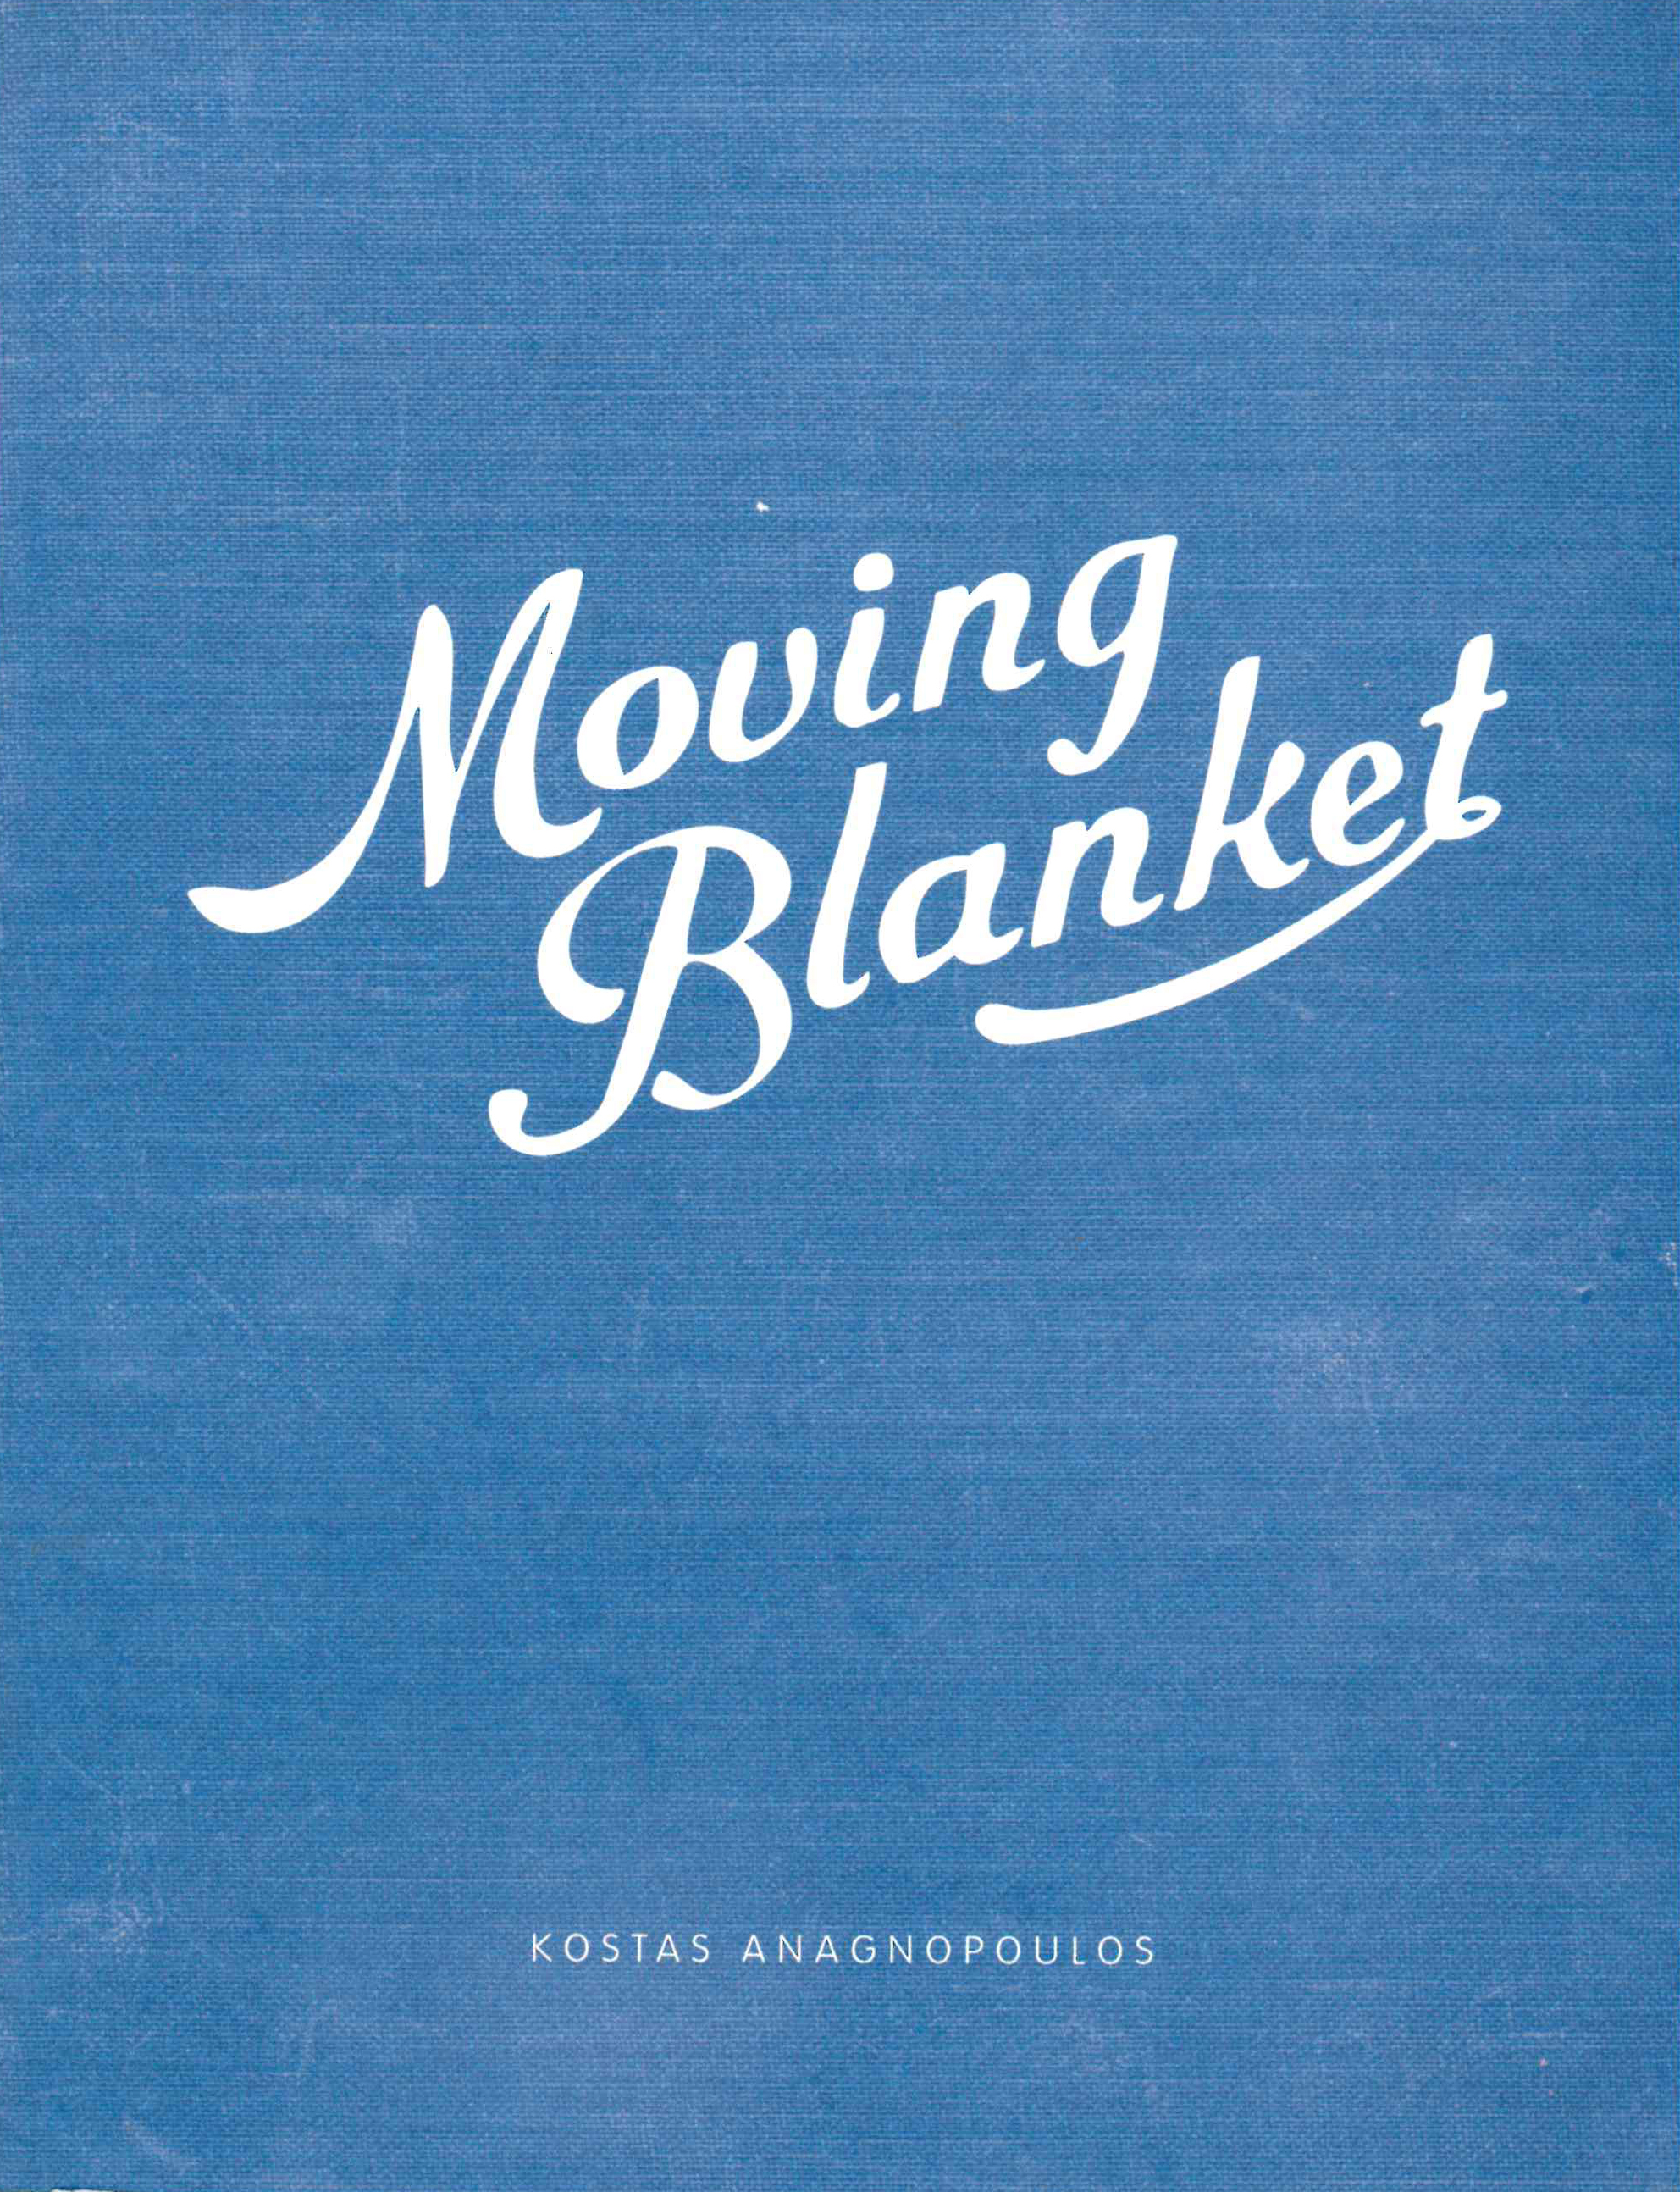 Moving Blanket